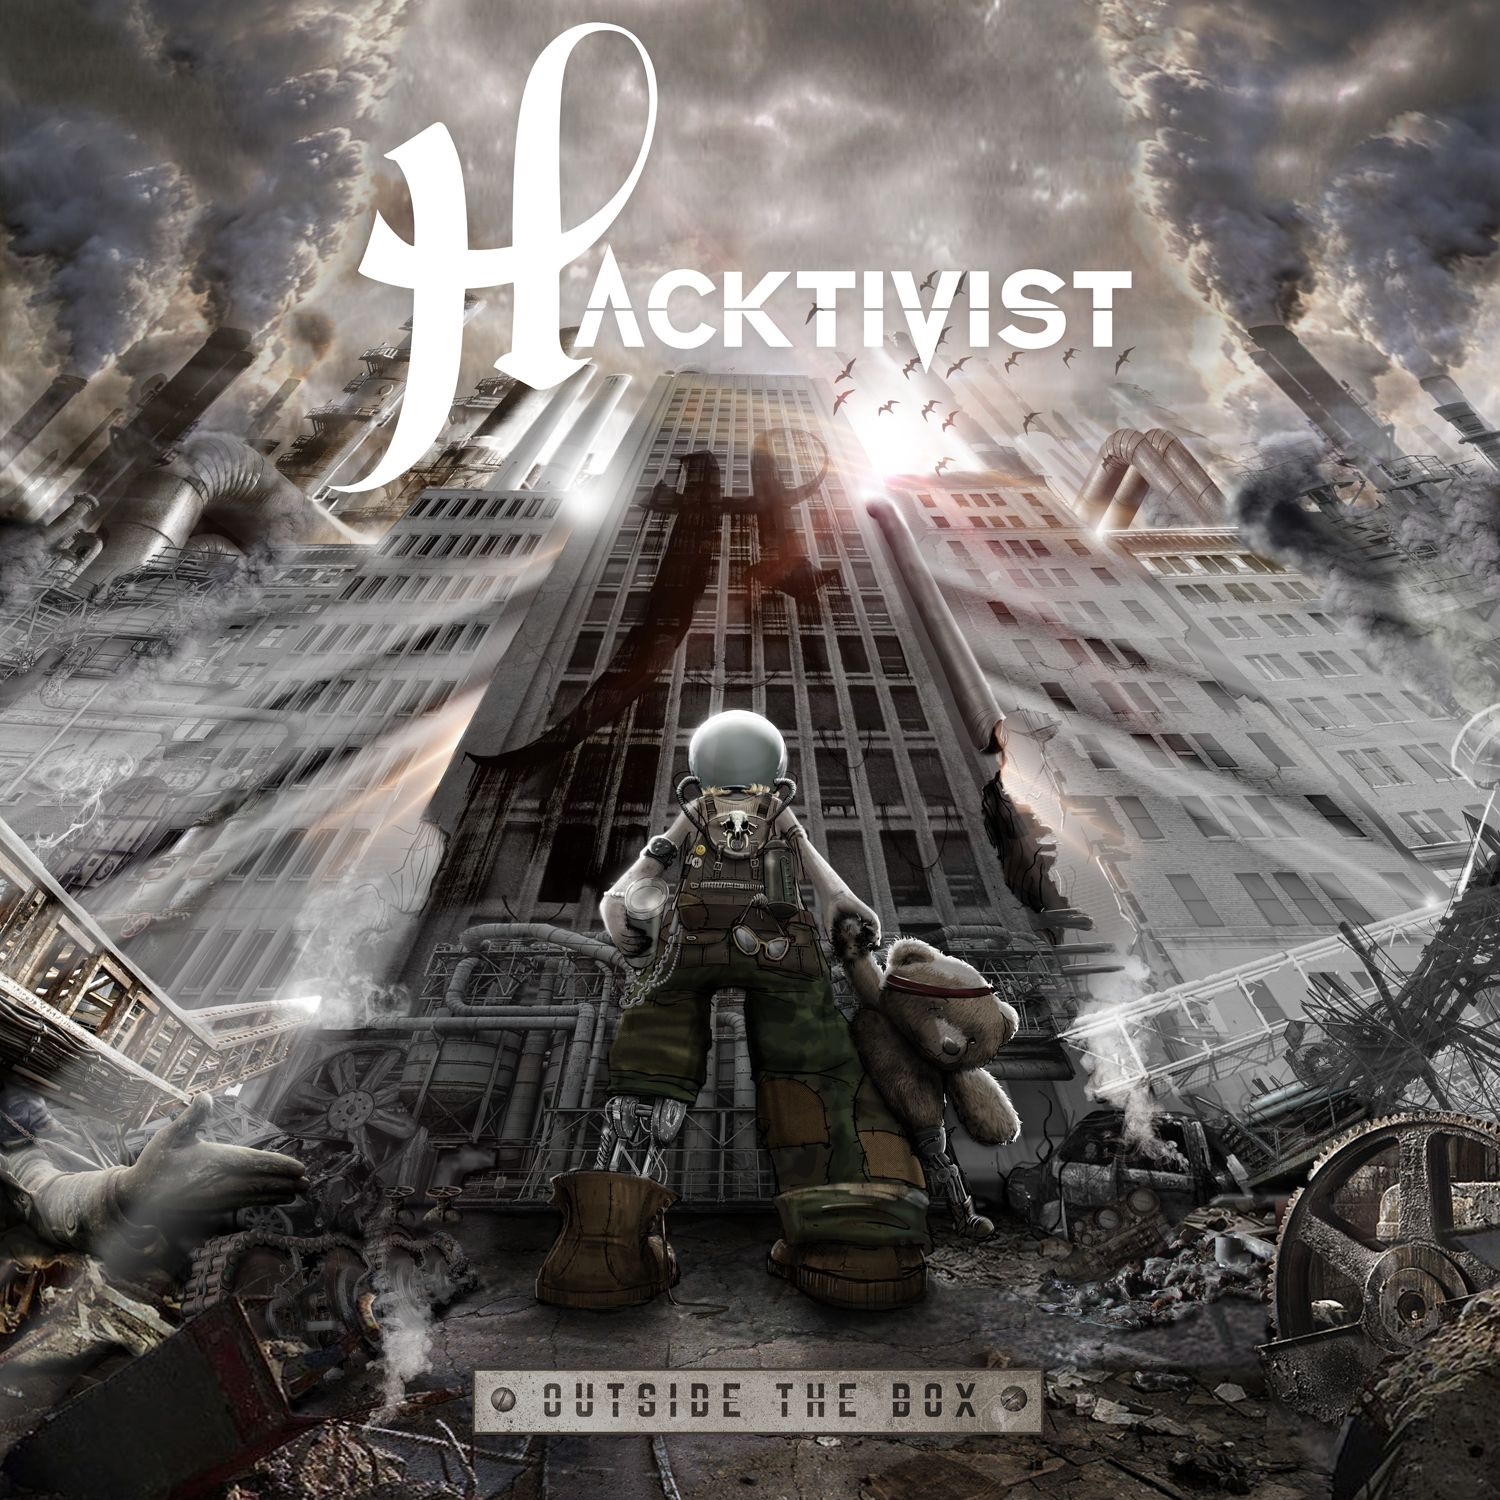 Hacktivist - Buszy [single] (2016)